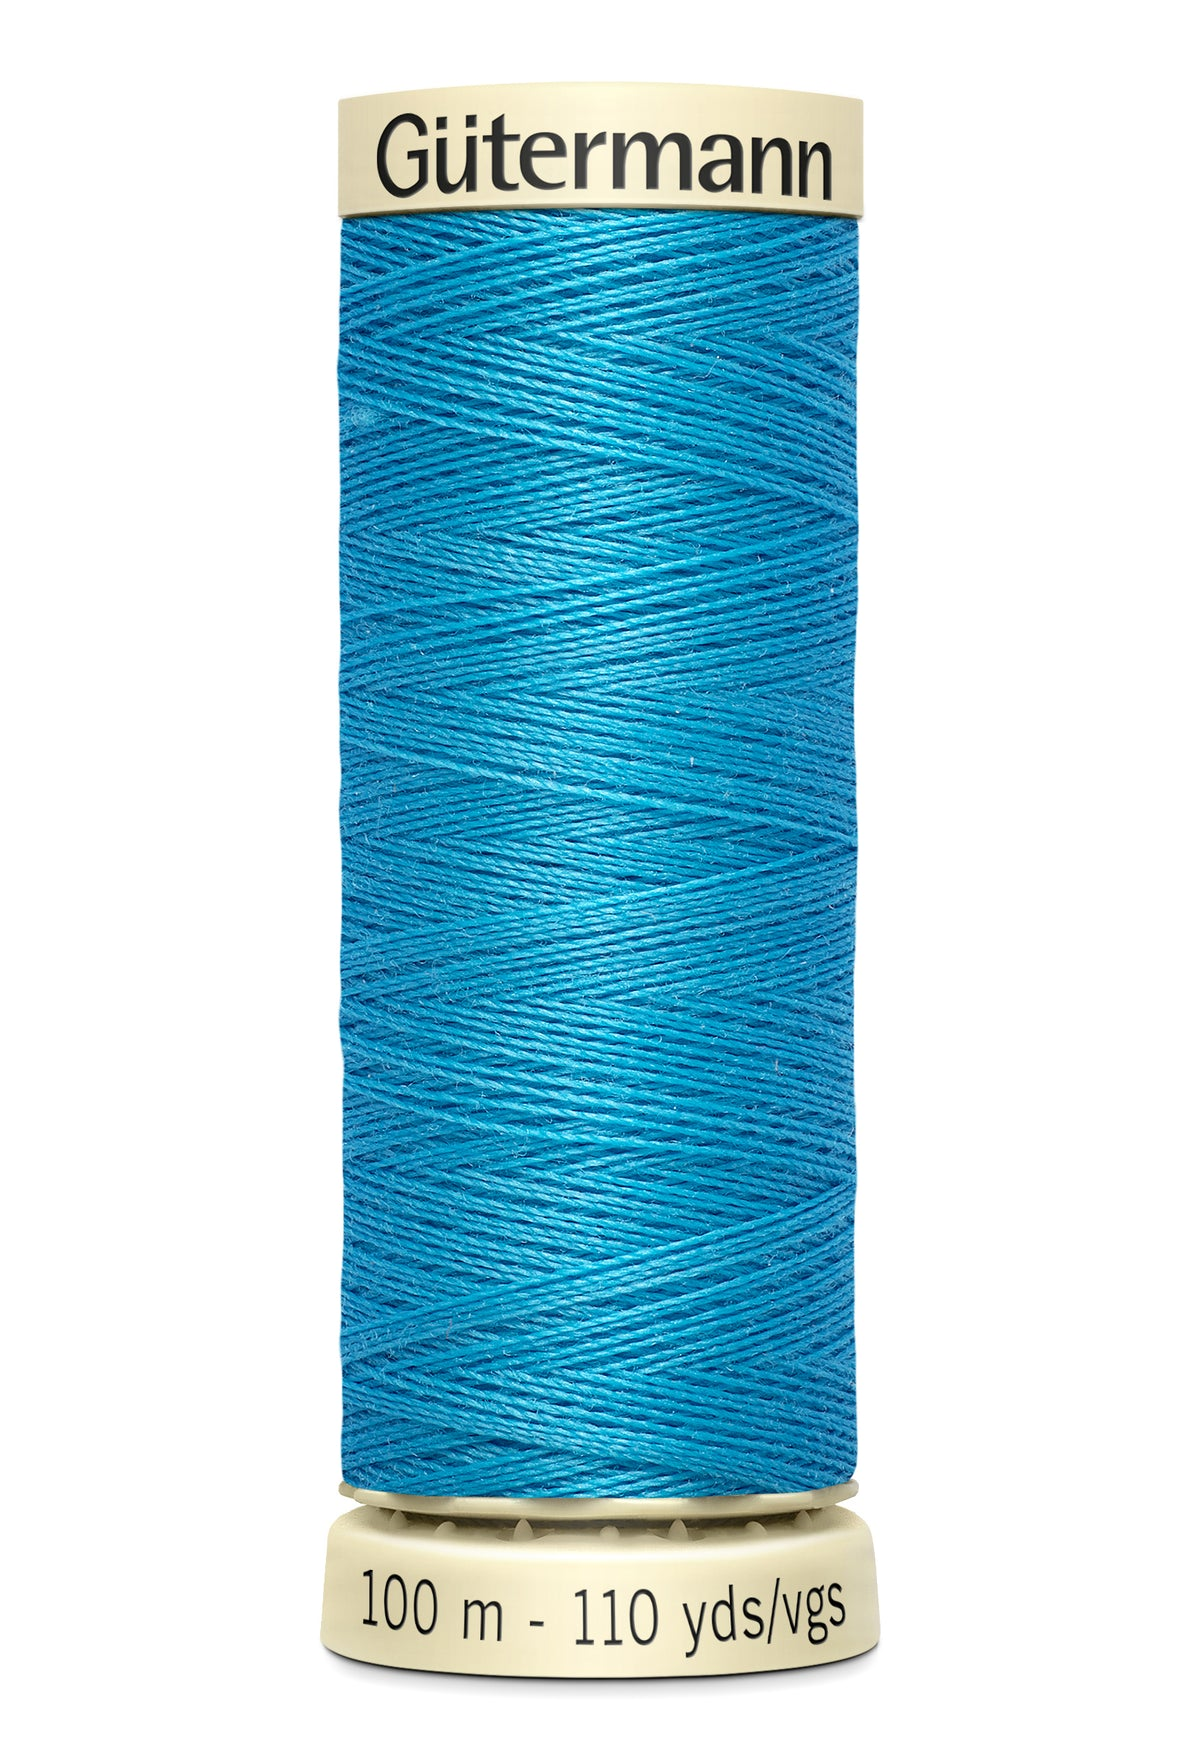 Gütermann sewing thread - 197 - MaaiDesign